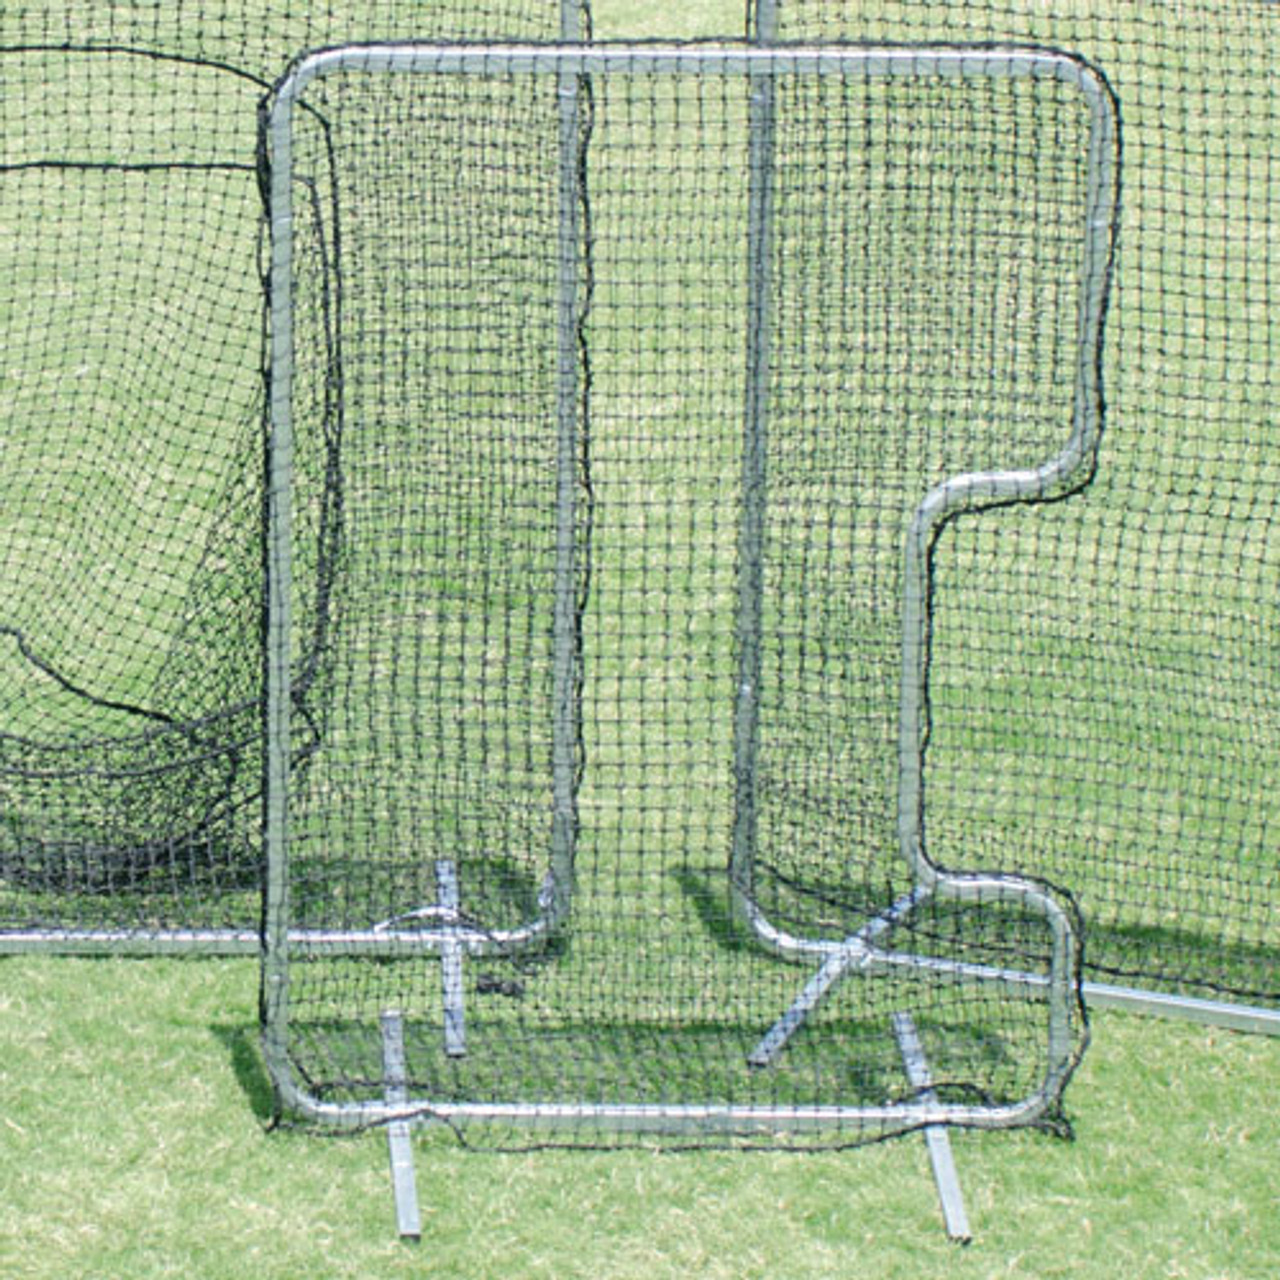 Baseball Collegiate C-Shaped Softball Pitchers Protector